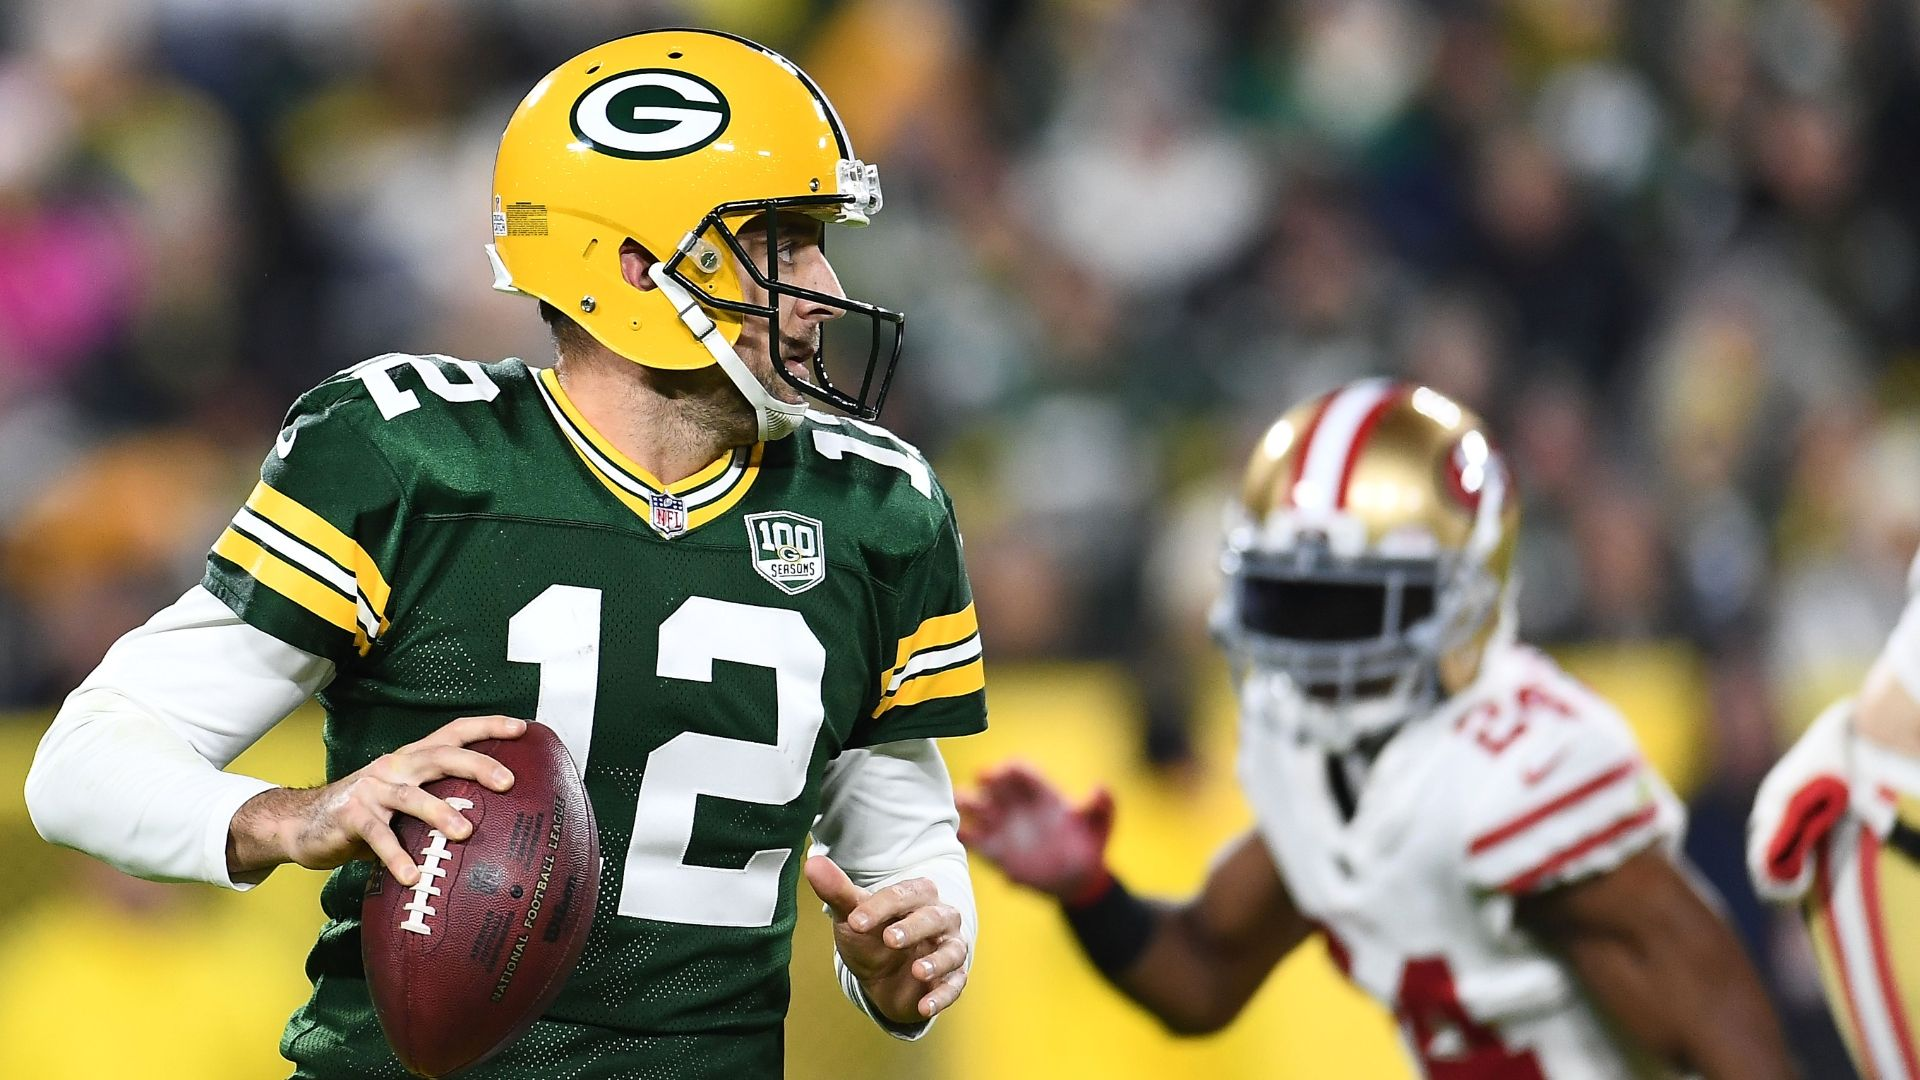 Rodgers engineers masterful game-winning drive in final minute